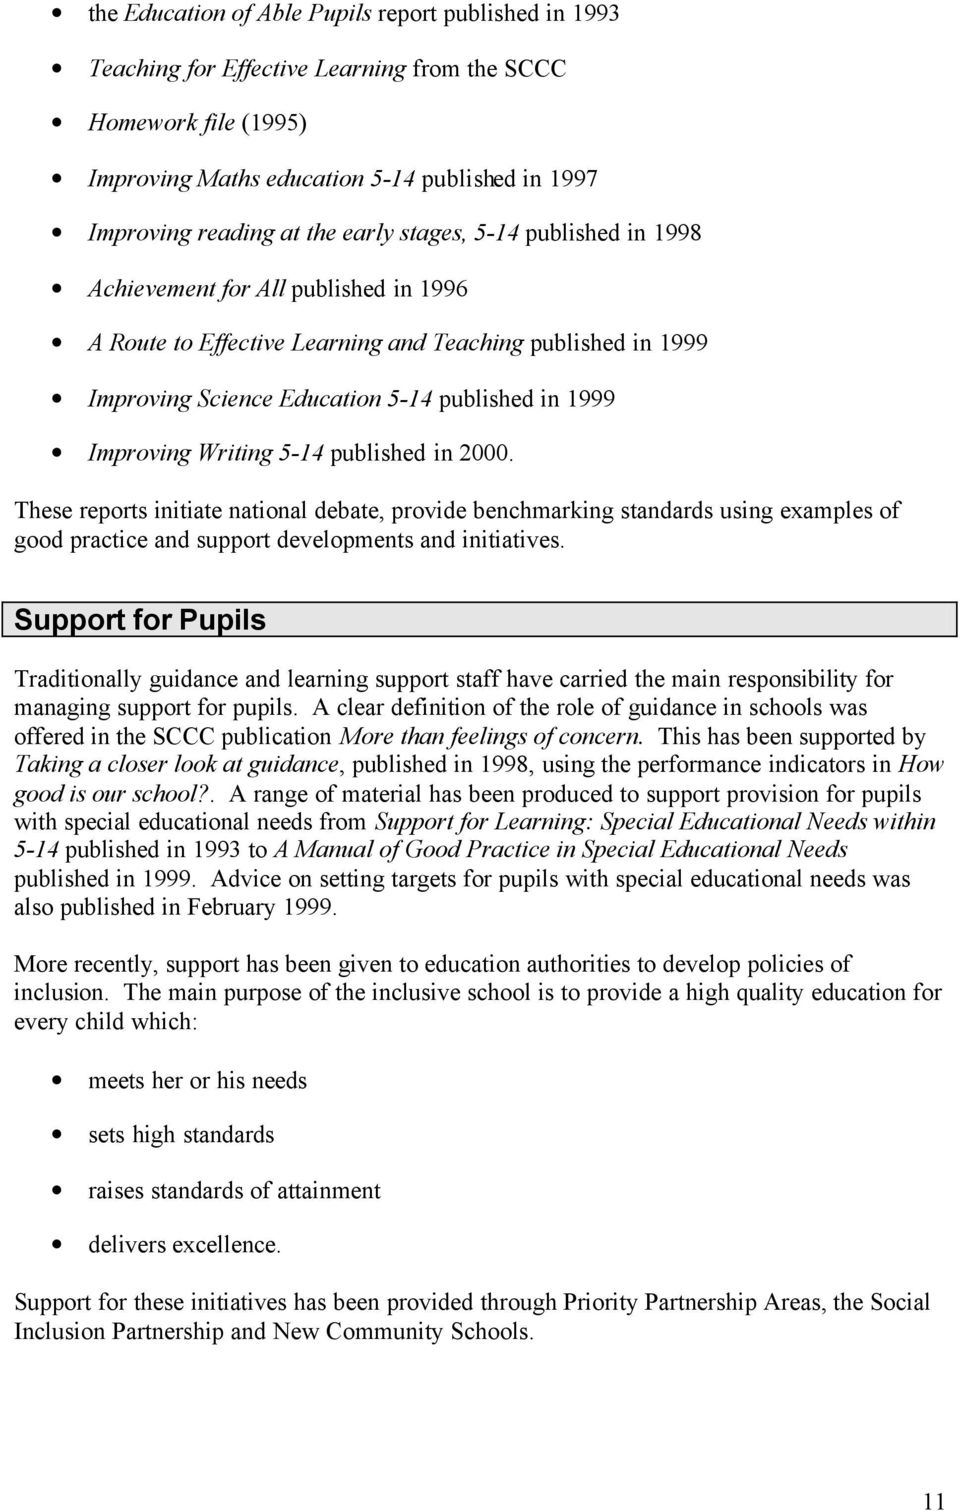 Writing 5-14 published in 2000. These reports initiate national debate, provide benchmarking standards using examples of good practice and support developments and initiatives.